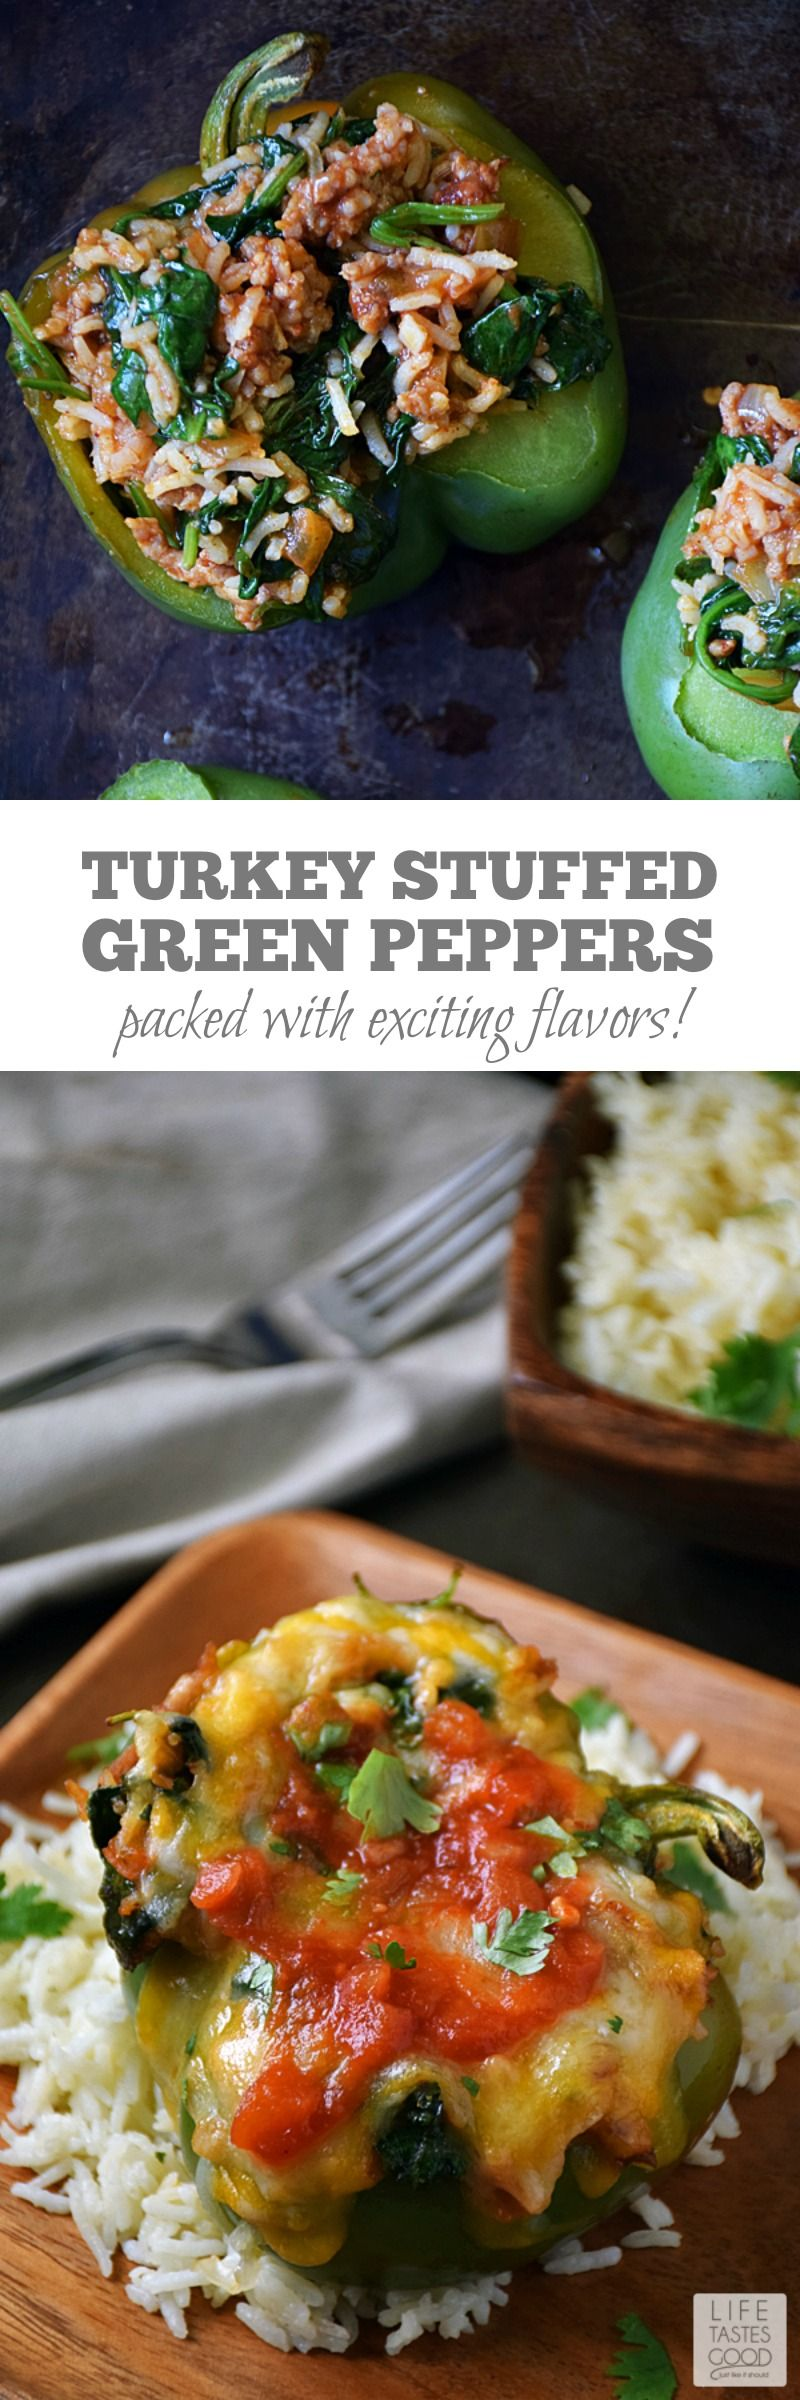 Green Peppers | by Life Tastes Good are stuffed with a mixture of turkey… #greenpeppers